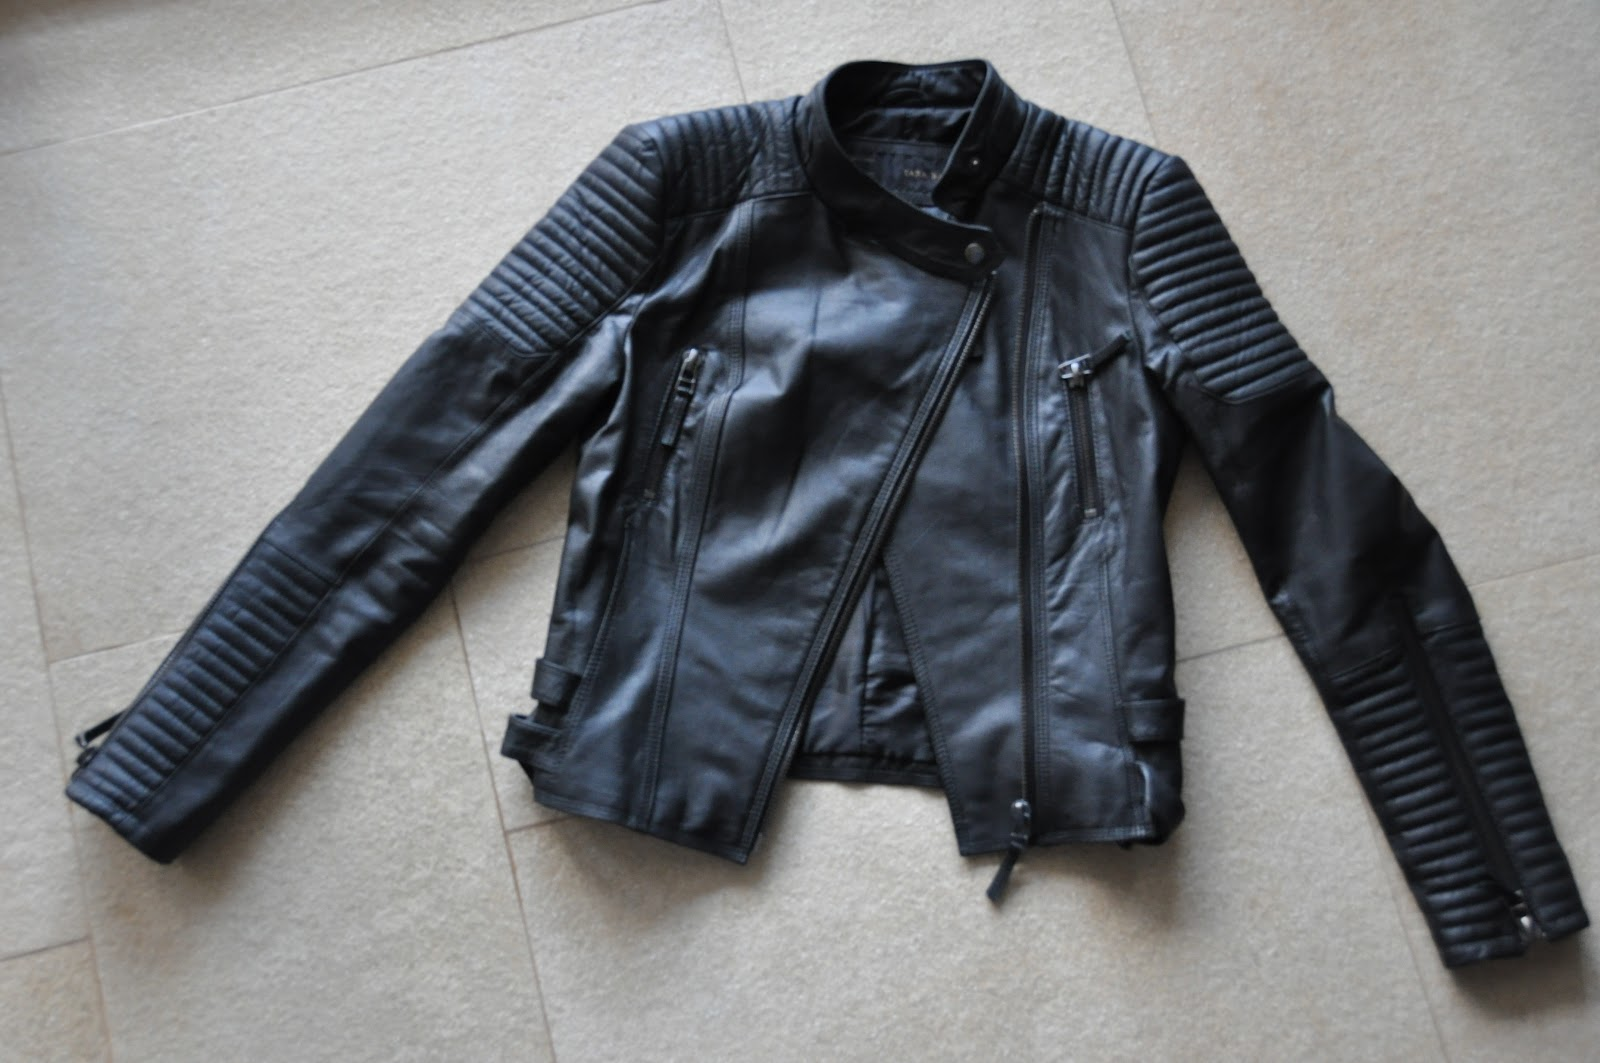 Black Leather Jackets For Women With Hood